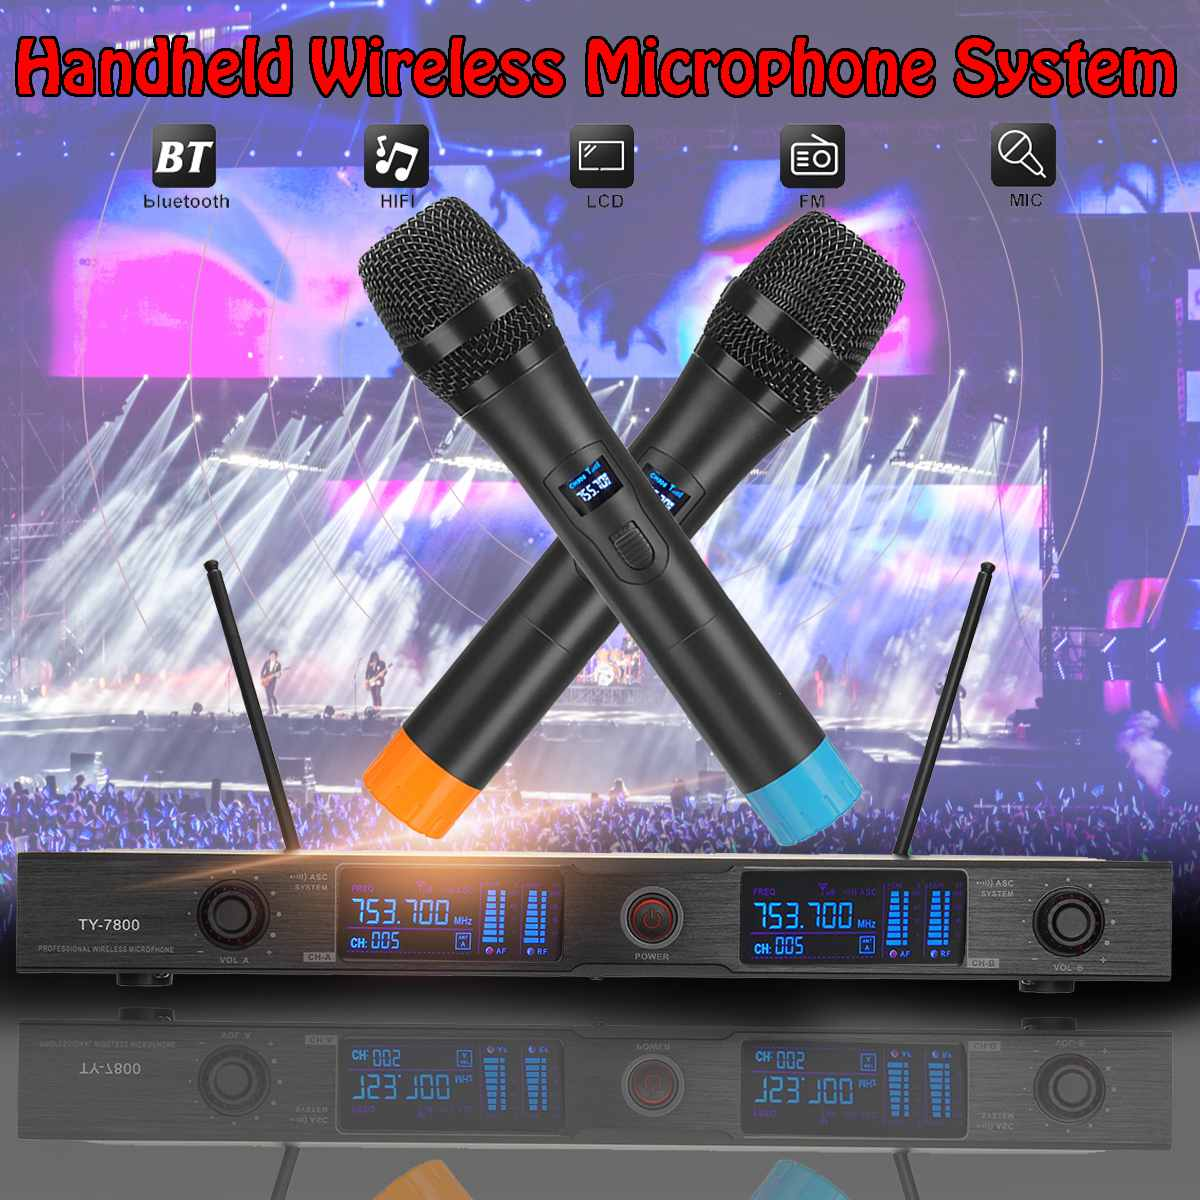 NEW 1 Set Professional 2 Handheld Wireless UHF Wireless Microphone System Cordless Microphones Receiver for Kareoke Home PartyNEW 1 Set Professional 2 Handheld Wireless UHF Wireless Microphone System Cordless Microphones Receiver for Kareoke Home Party